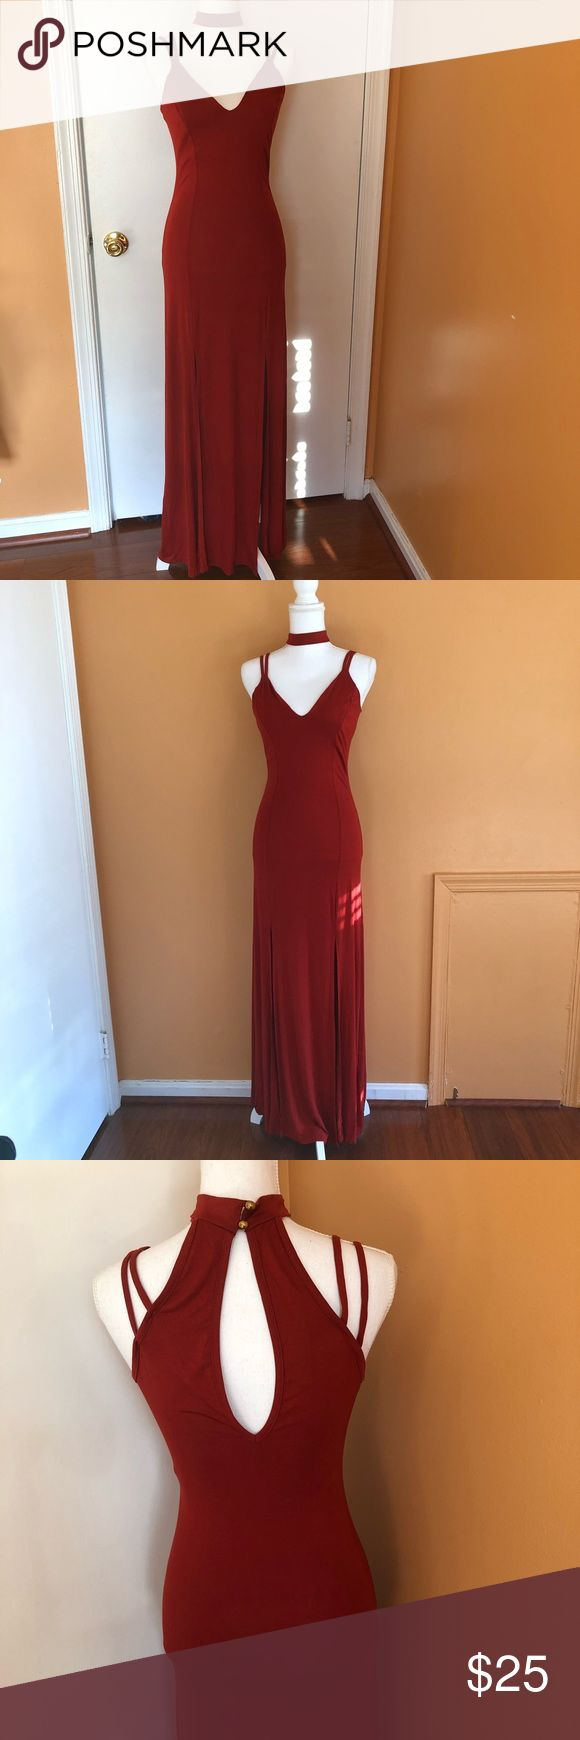 Coral Maxi dress with chocker size Medium Cute Long/Maxi dress with attached chocker Size Medium  Two front slits Good condition Privy Dresses Maxi